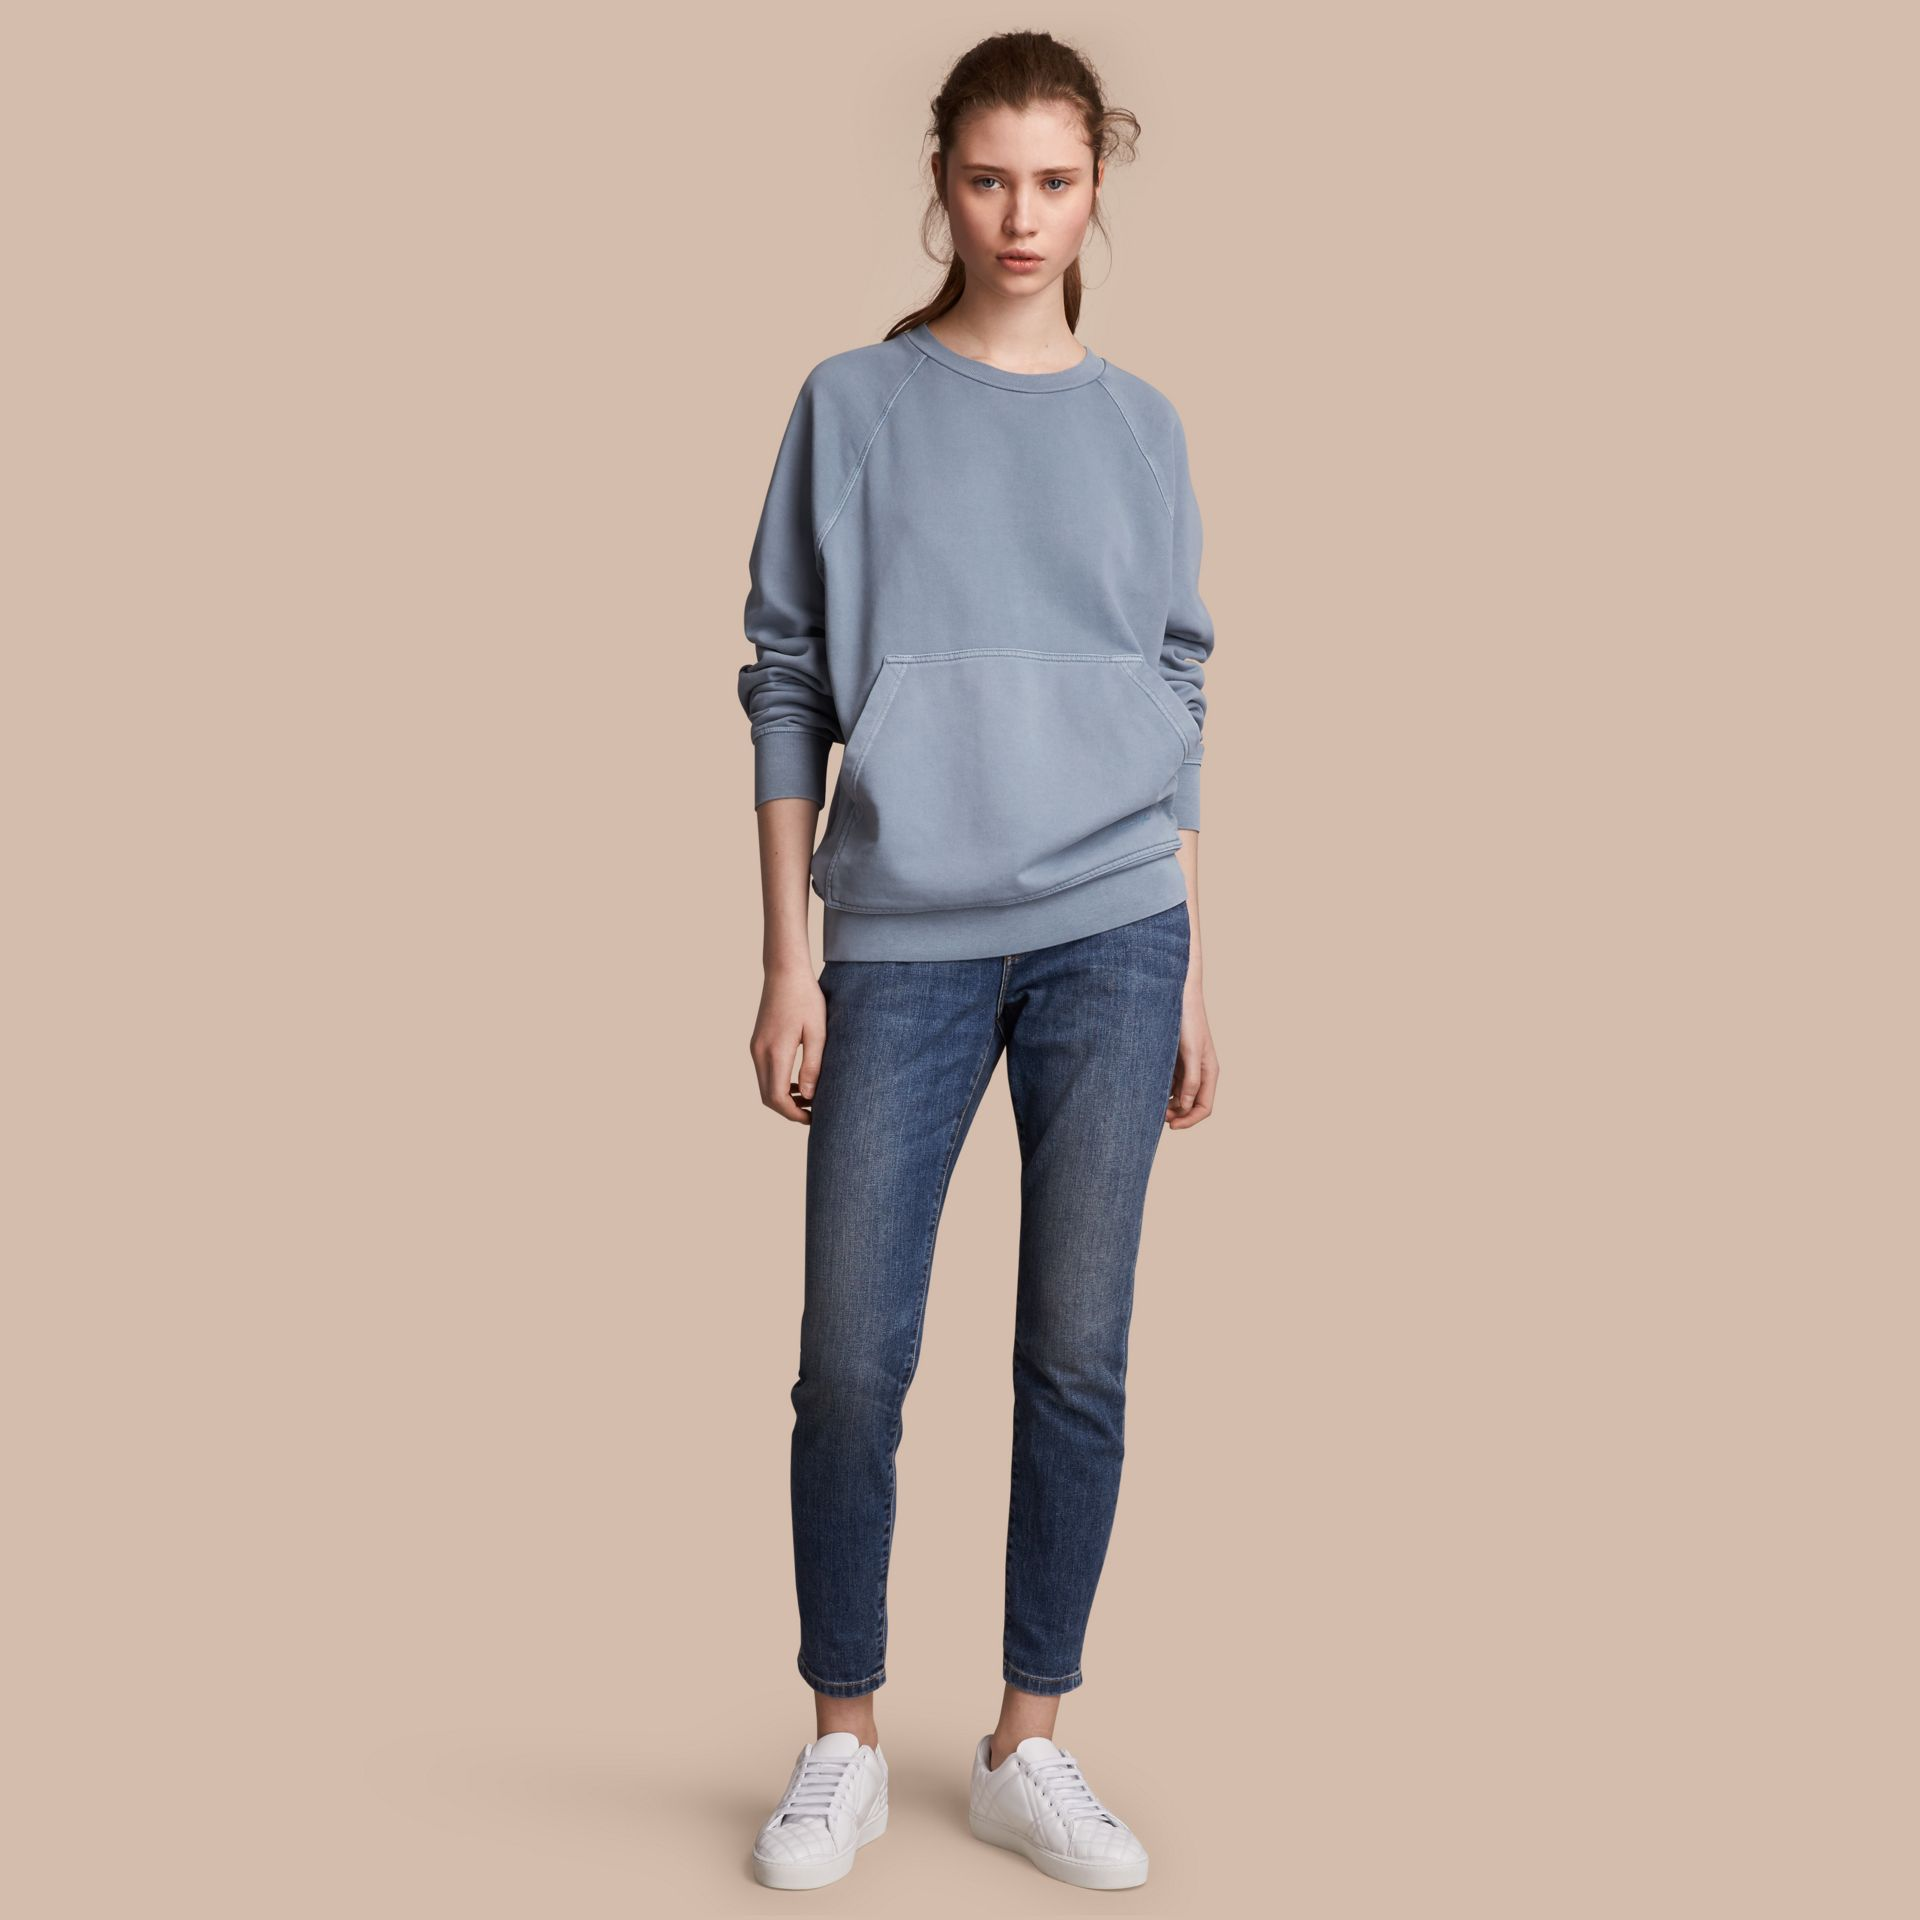 Unisex Pigment-dyed Cotton Oversize Sweatshirt in Dusty Blue - Women | Burberry - gallery image 1